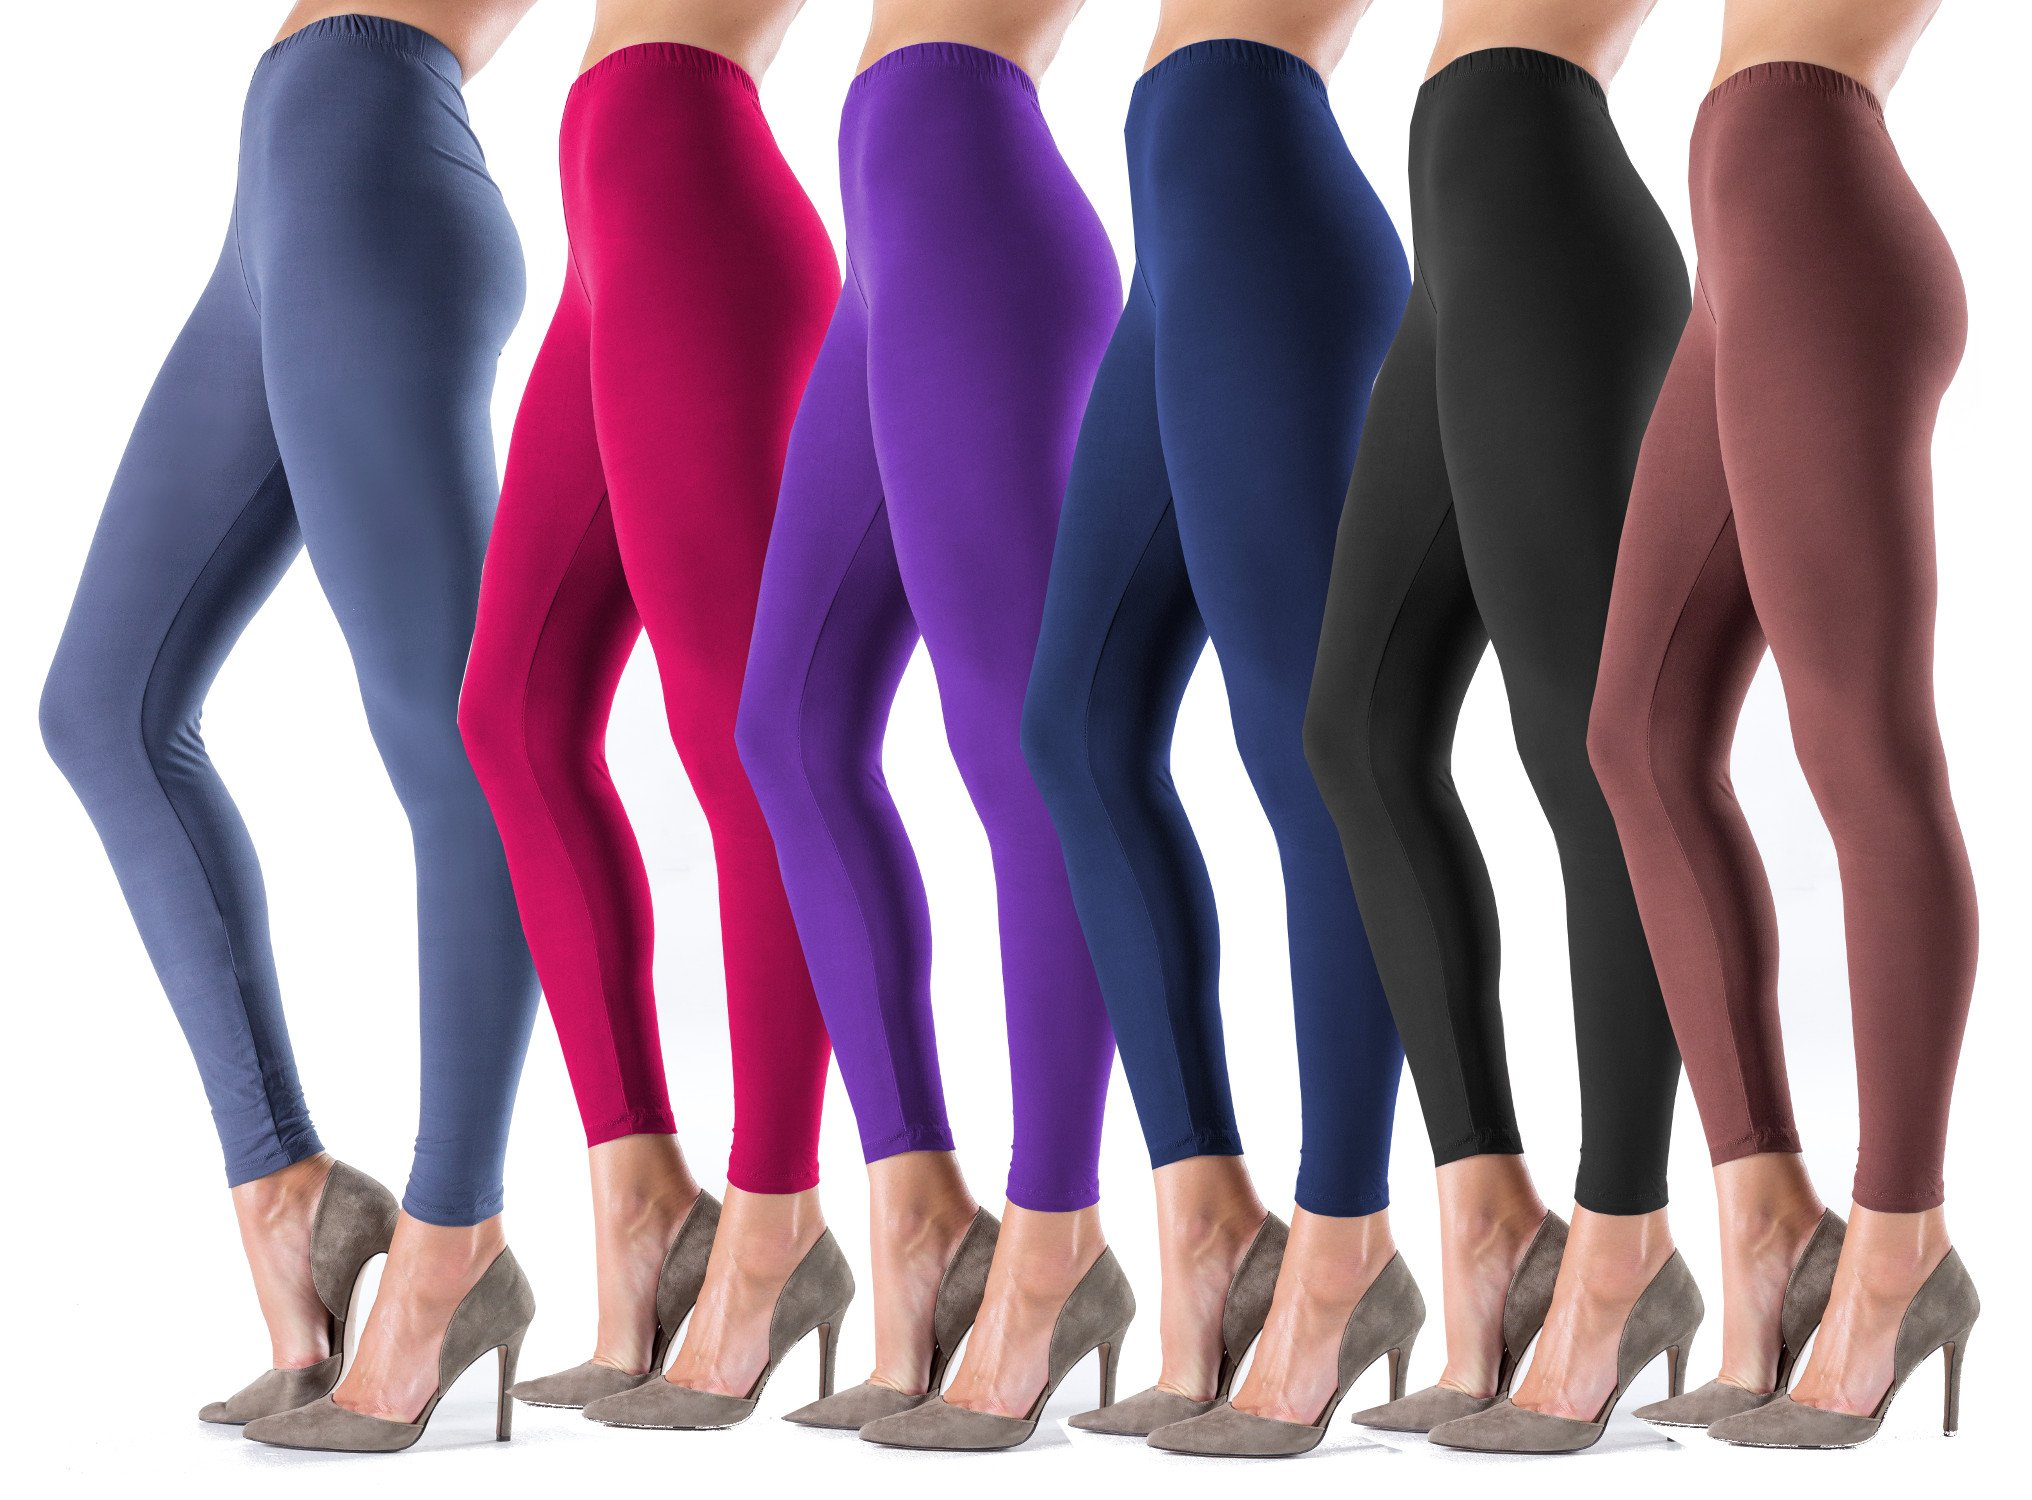 Lush Moda Women's Basic Leggings - Extra Soft and Variety of Colors - 6-Pack